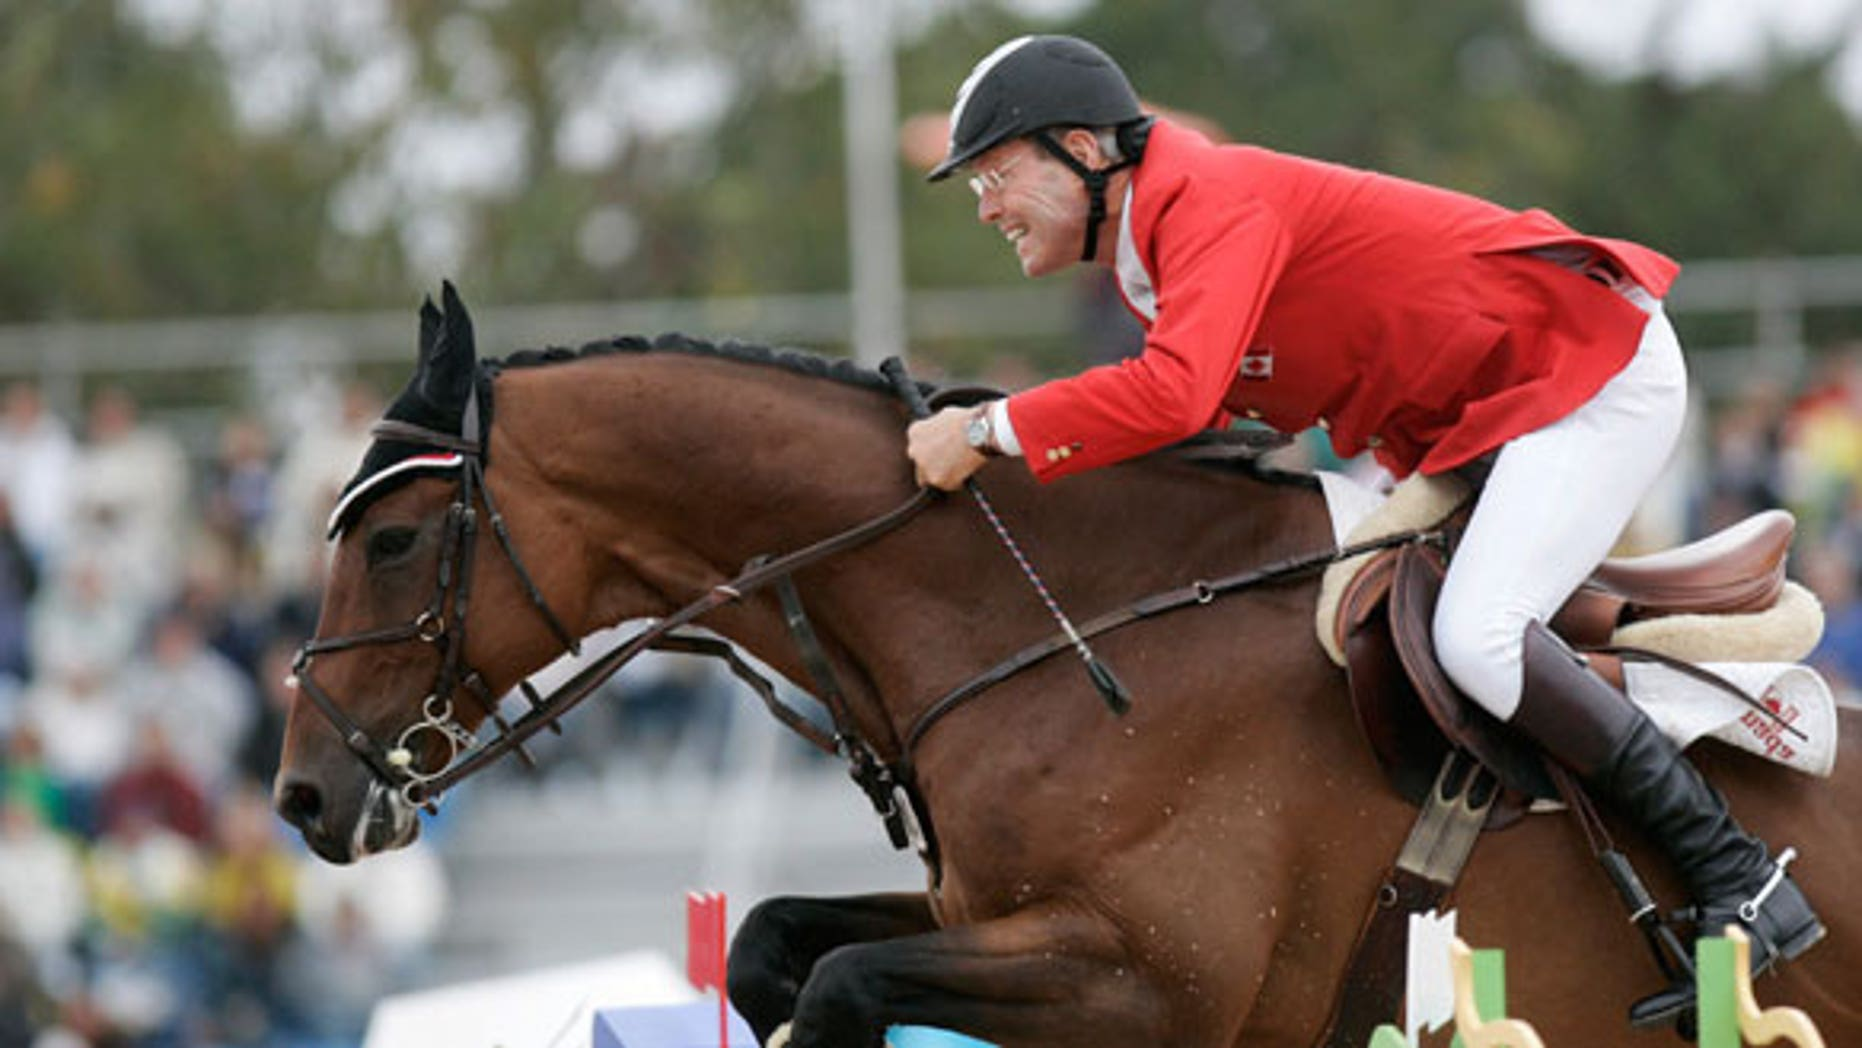 """July 29, 2007: Canada's Ian Millar rides """"In Style"""" during the final jumping competition at the Pan American Games in Rio de Janeiro."""